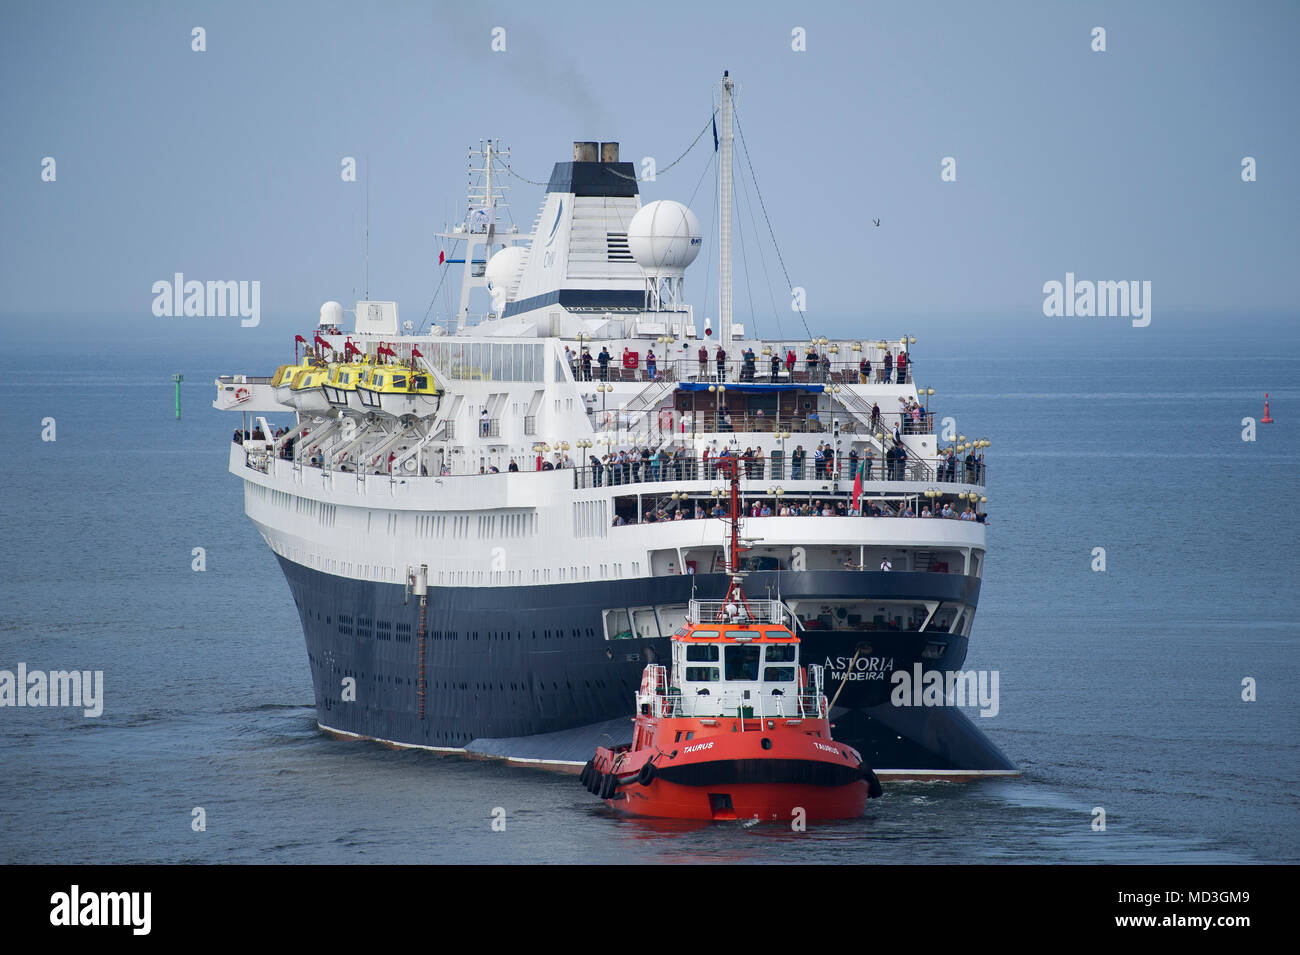 Gdansk, Poland. 18th April 2018. 160 meter long cruise ship MV Astoria started cruising season in Gdansk harbour in Gdansk, Poland. April 18th 2018. Built in 1948 as Stockholm is the oldest cruise ship in the world. Known for causing sea crash with famous Andrea Doria line ship in 1956 causing its sunk © Wojciech Strozyk / Alamy News Live - Stock Image